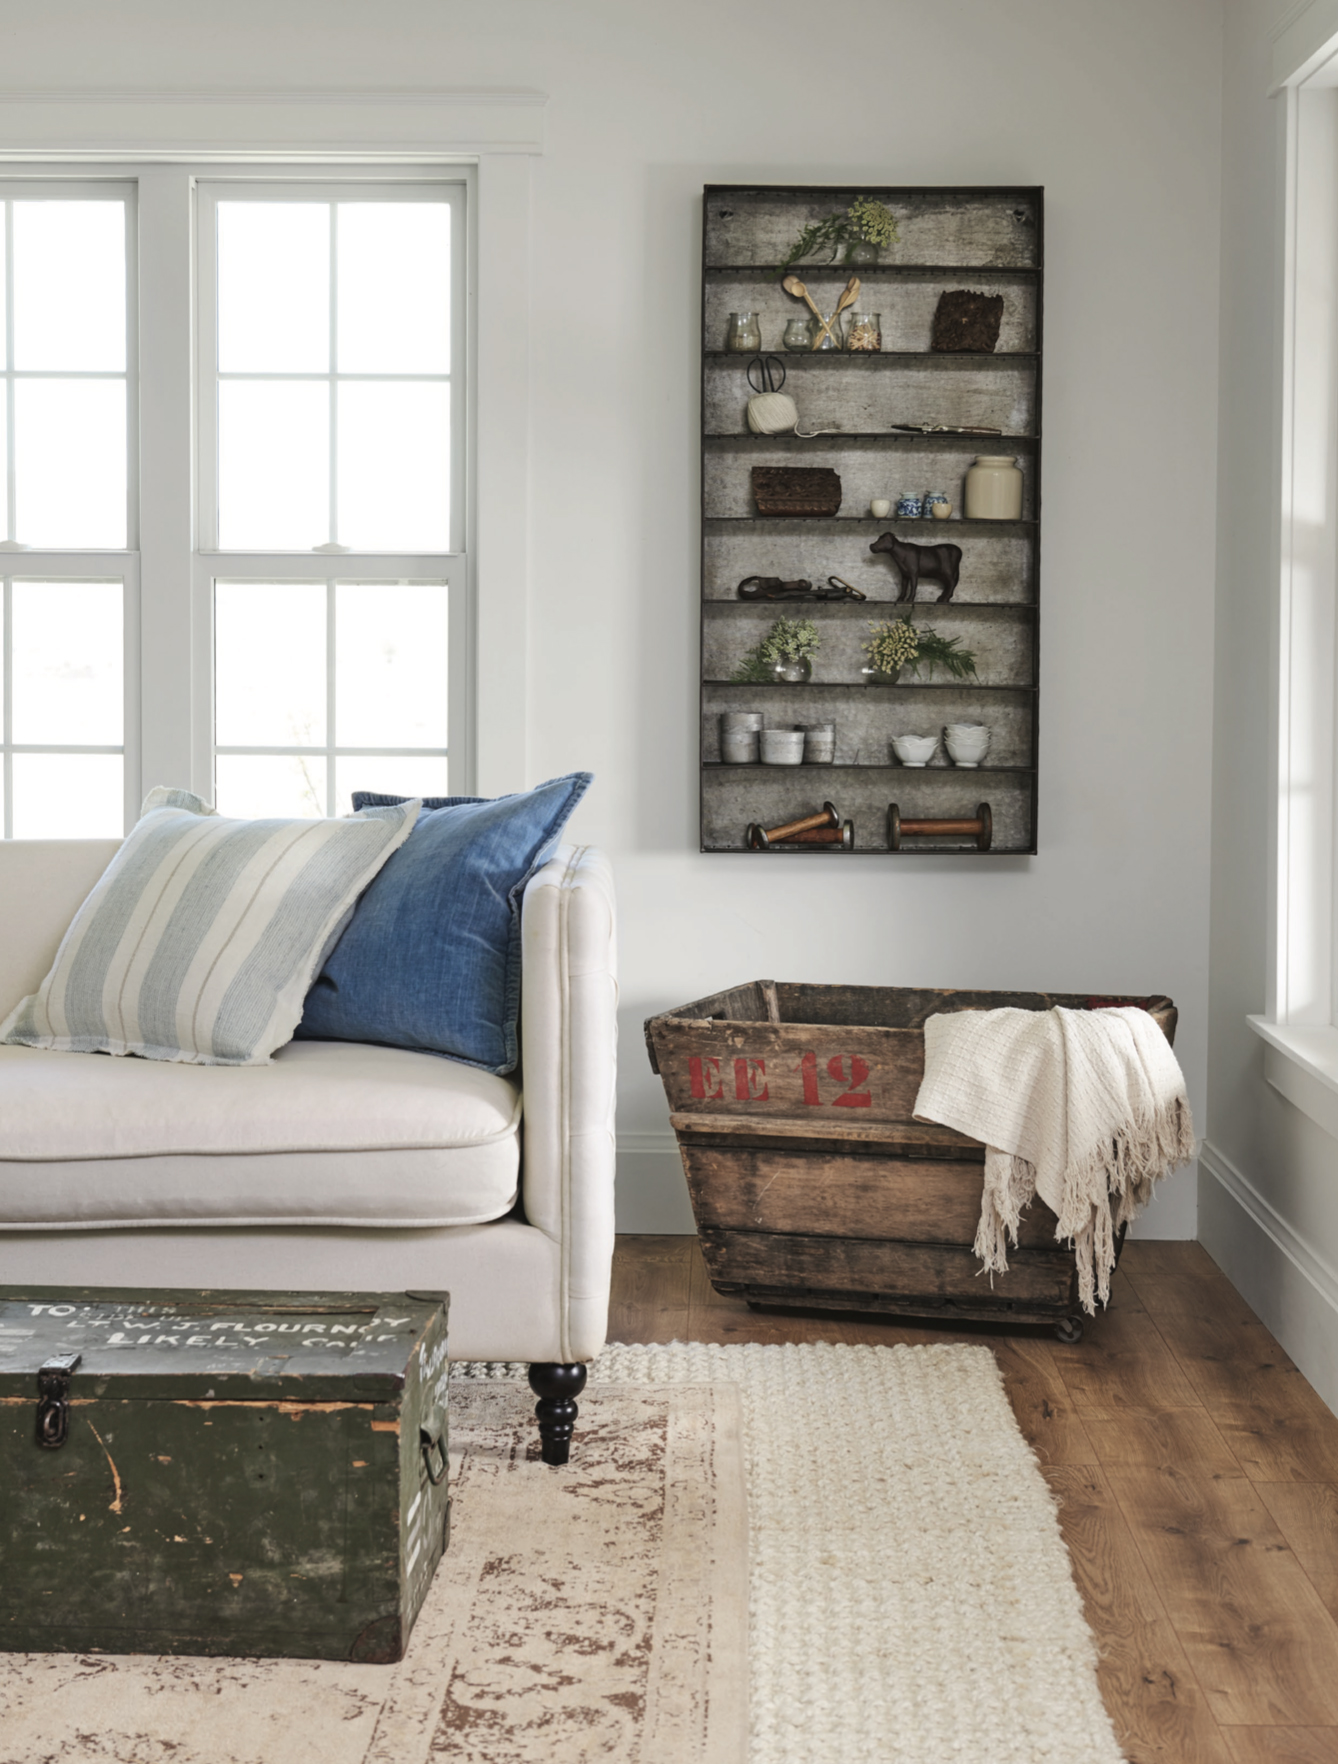 Farmhouse+living+room+with+metal+spice+shelf+wall+art+and+vintage+army+trunk+coffee+table+with+tufted+couches+and+vintage+champagne+crate+|+#farmhousestyle+#farmhouse copy.jpg